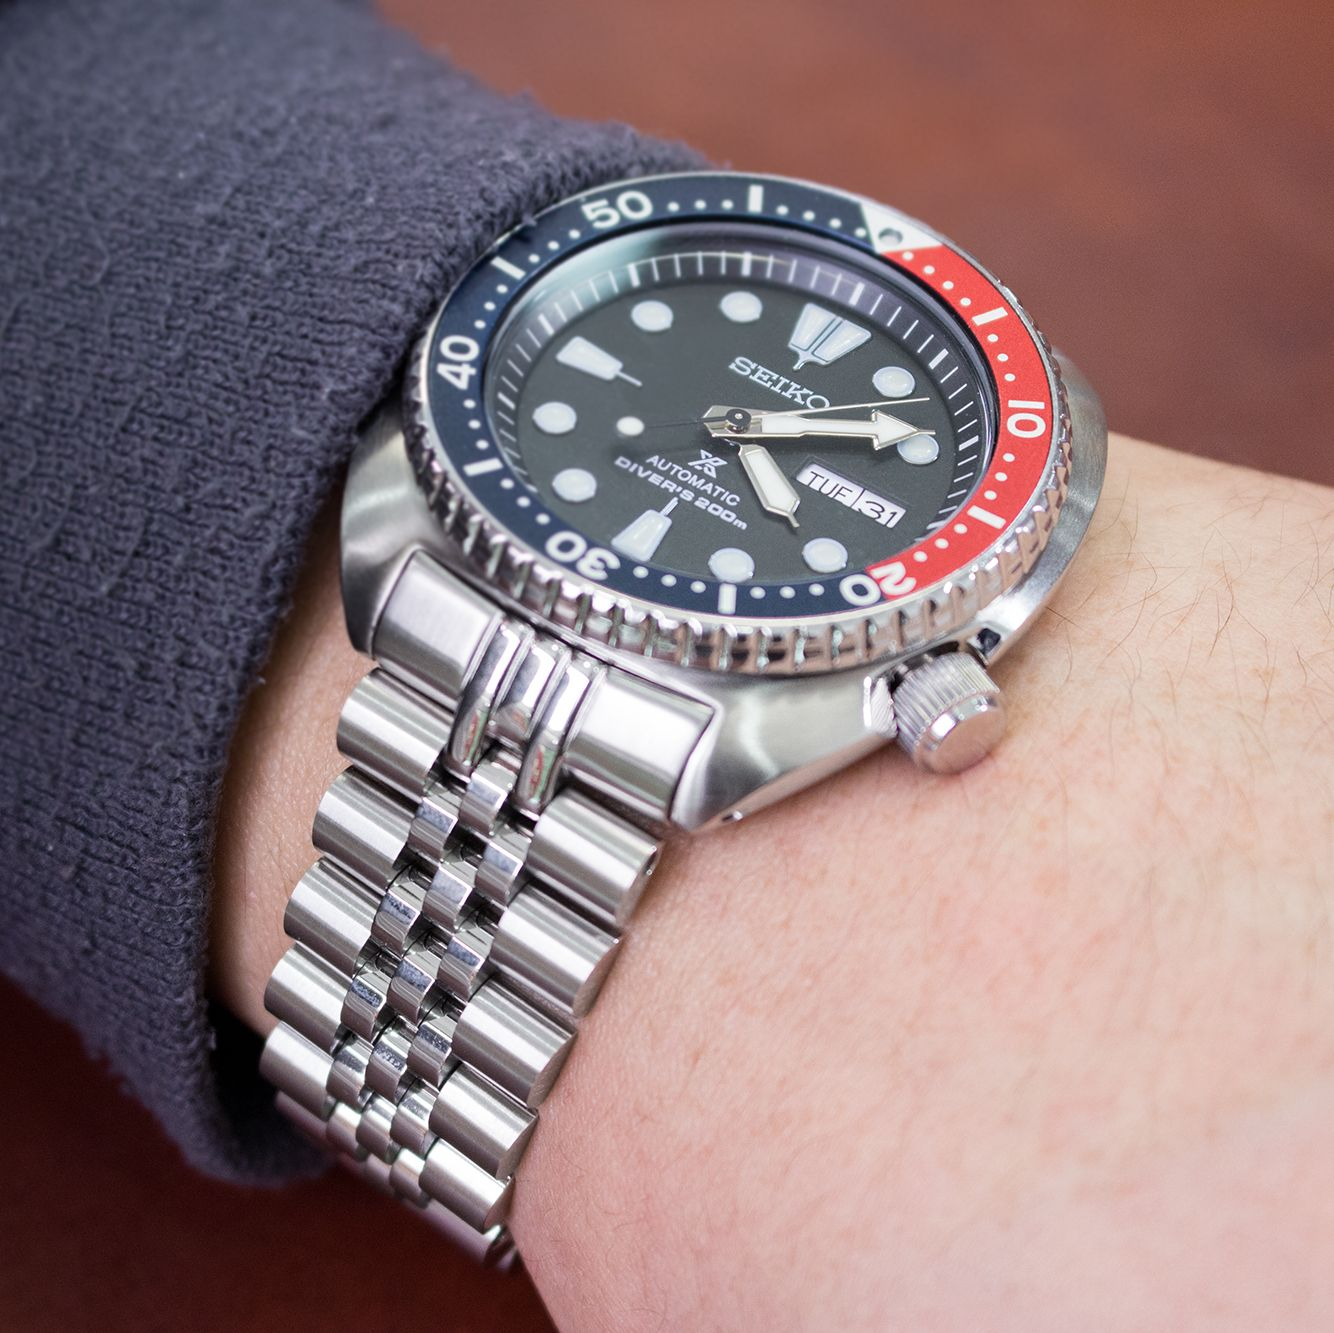 Miltat super jubilee watch bracelet for seikoturtle srp777 strapcode seiko new turtle for Jubilee watch